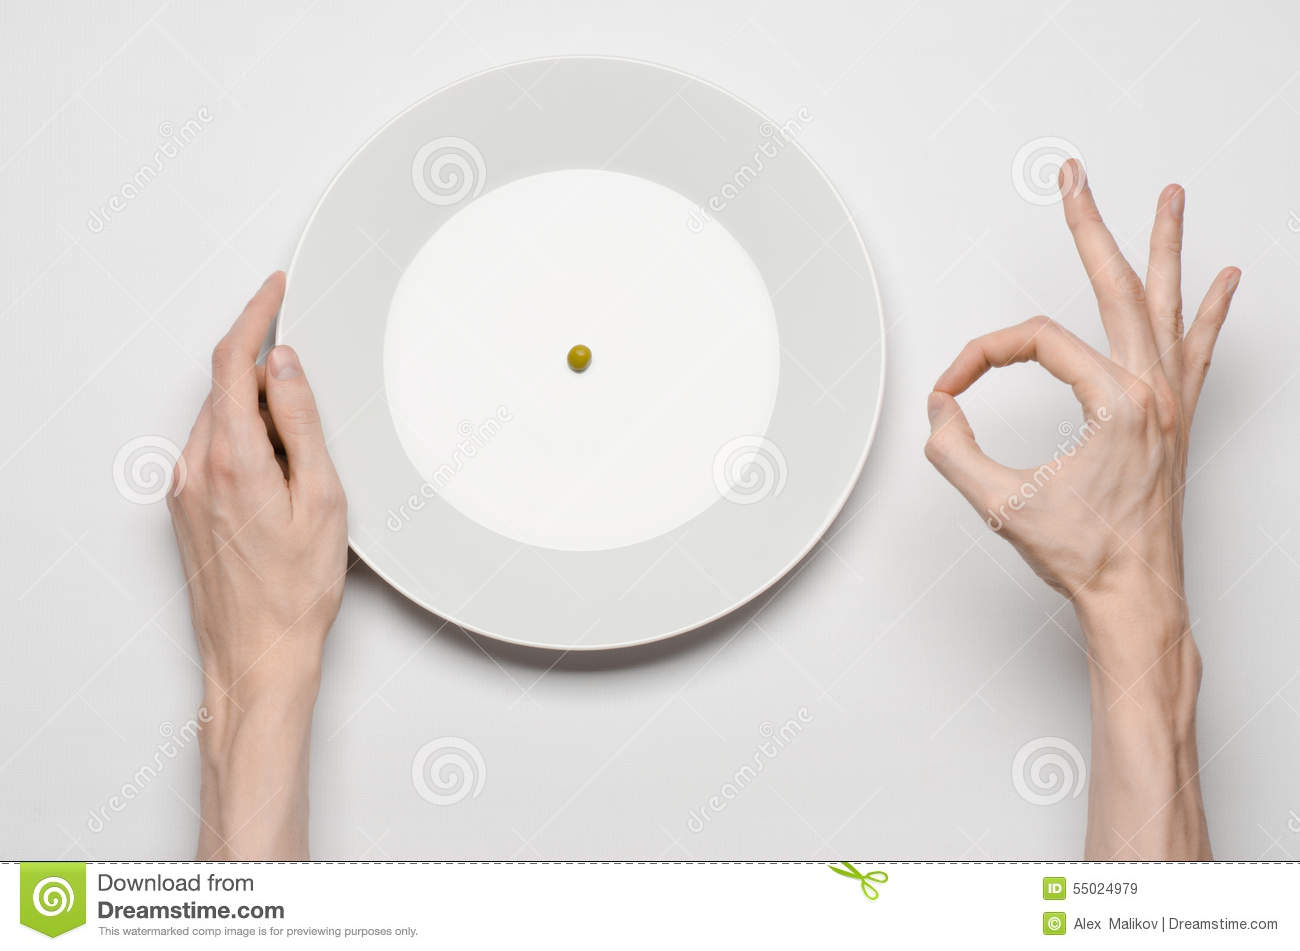 Healthy Food Theme Hands Holding Knife And Fork On A